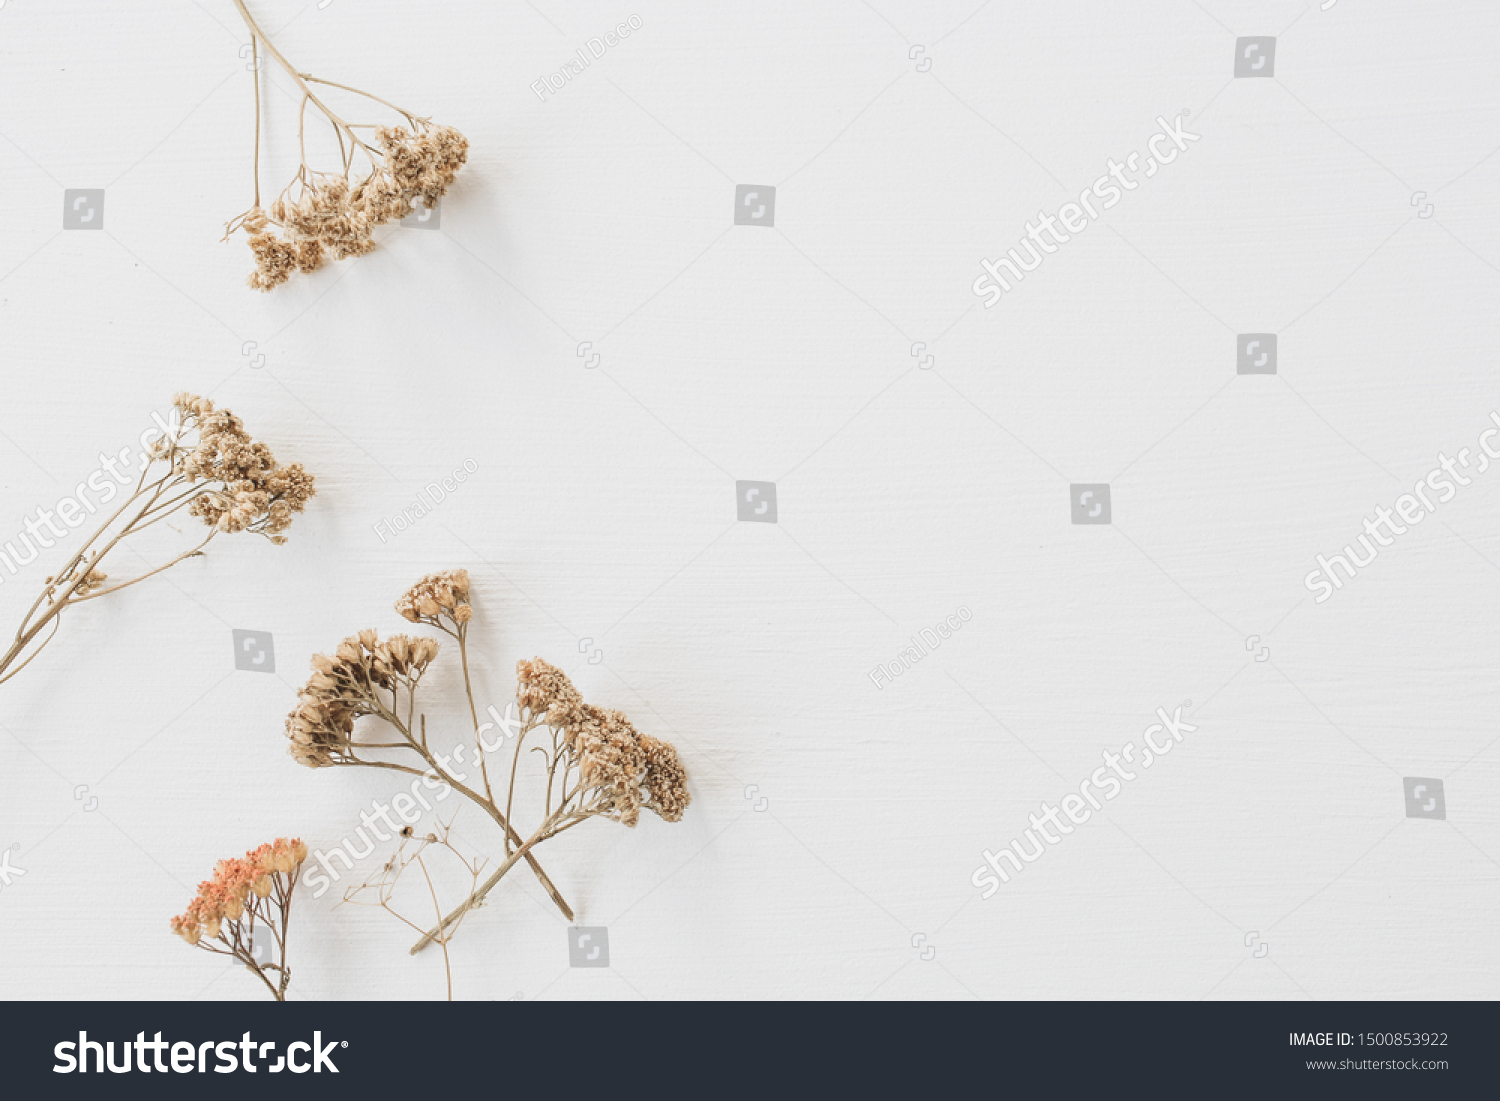 Dry floral branch on white background. Flat lay, top view minimal neutral flower background. #1500853922